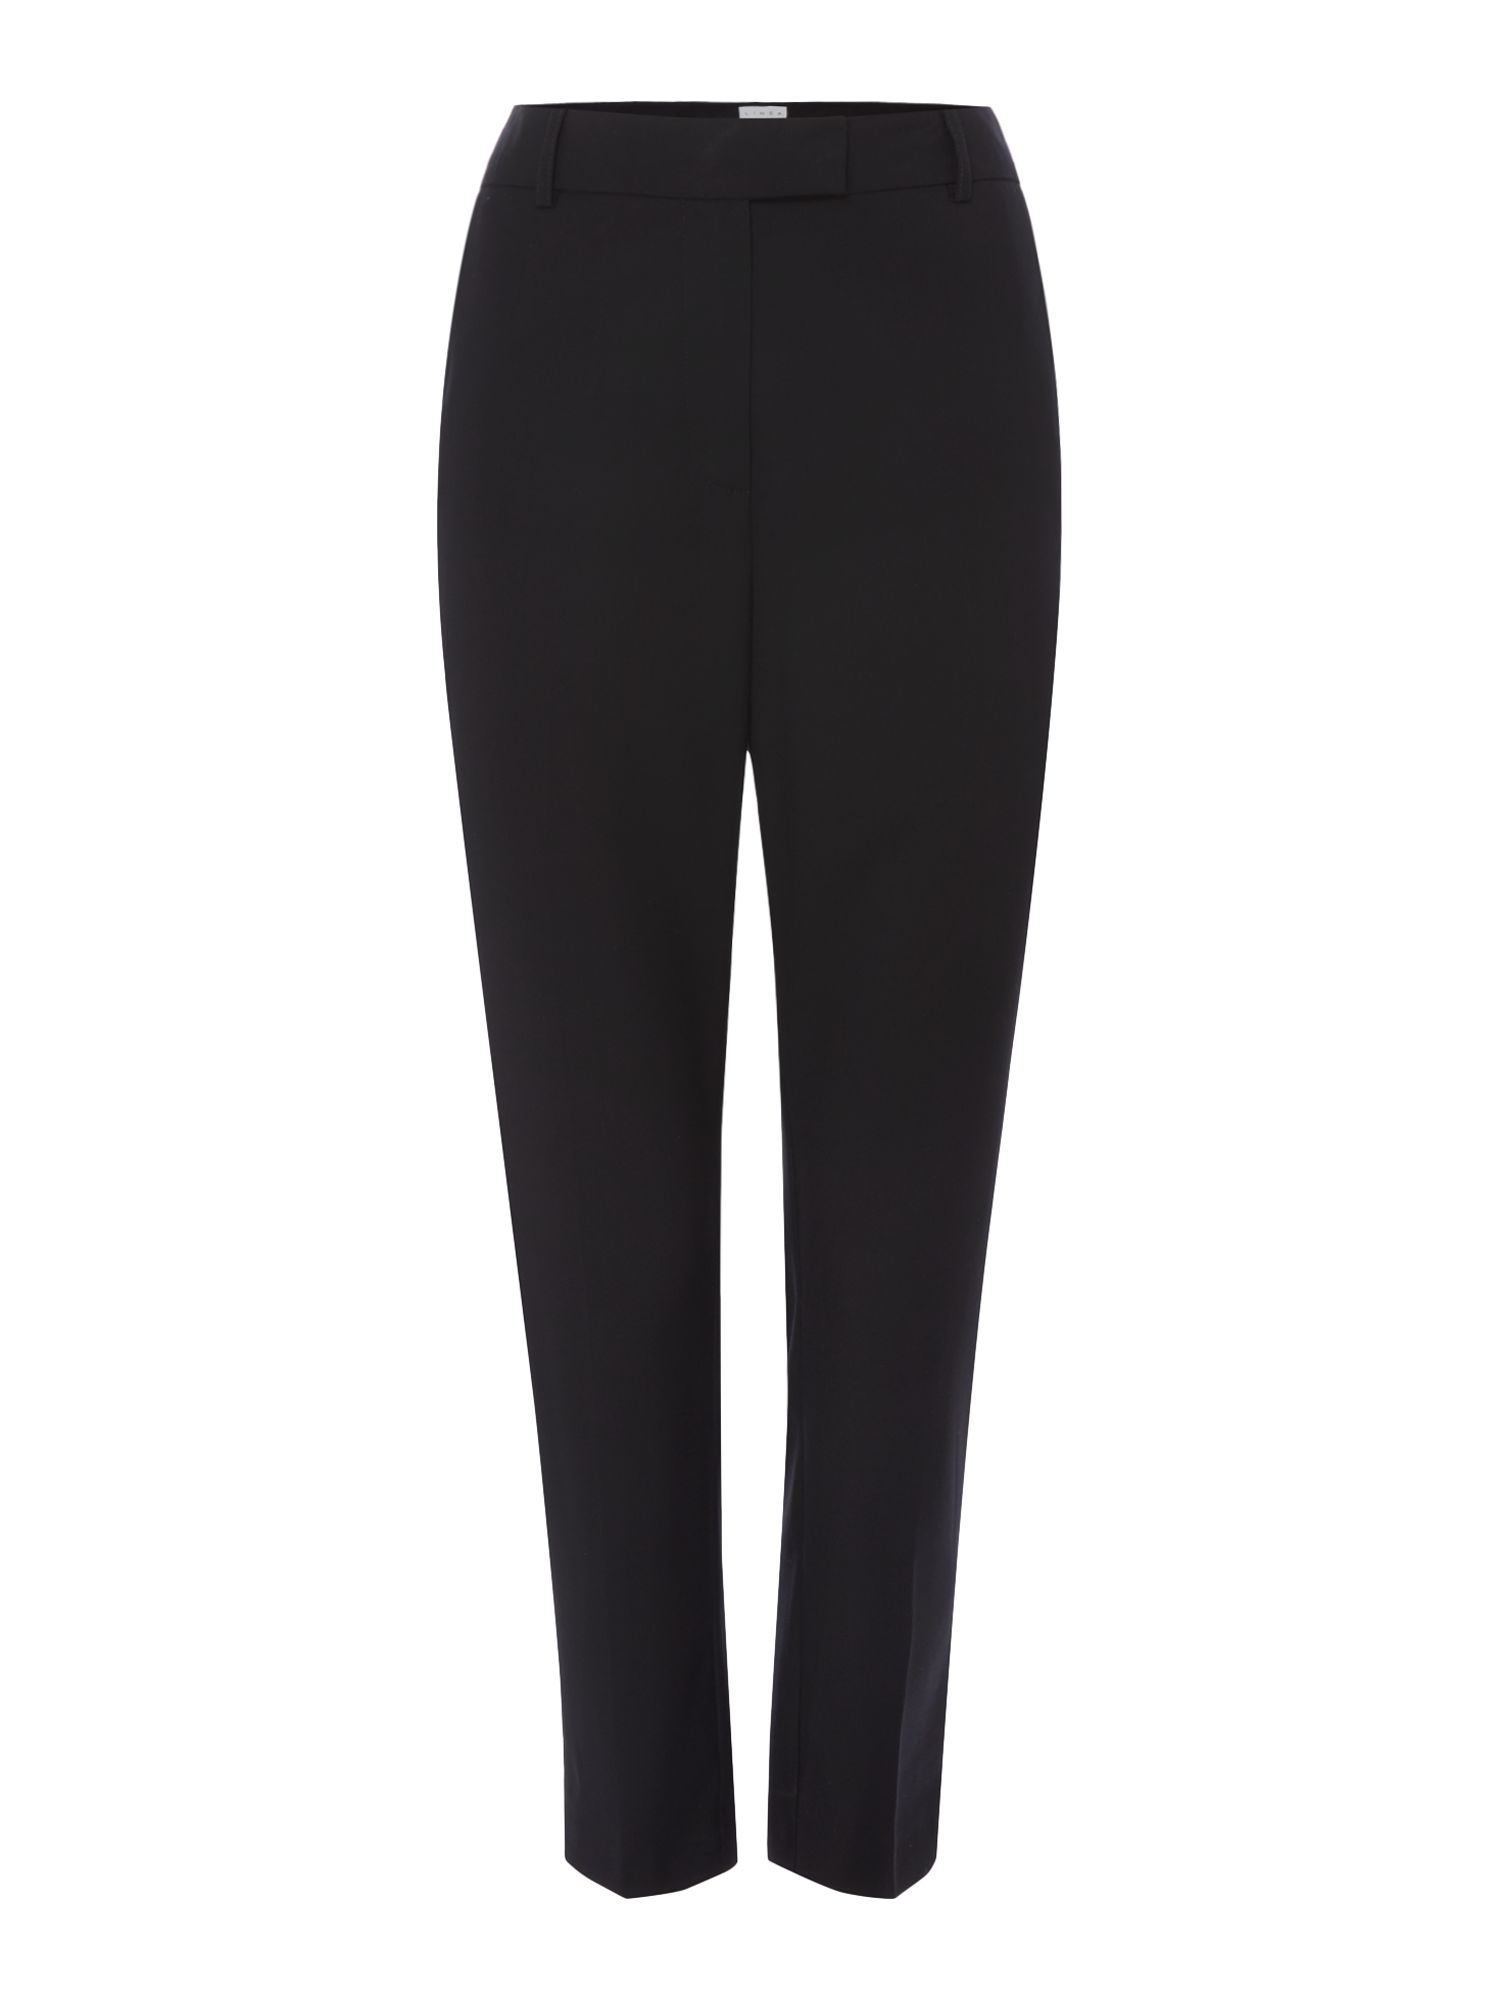 Linea Mona slim leg trouser, Black